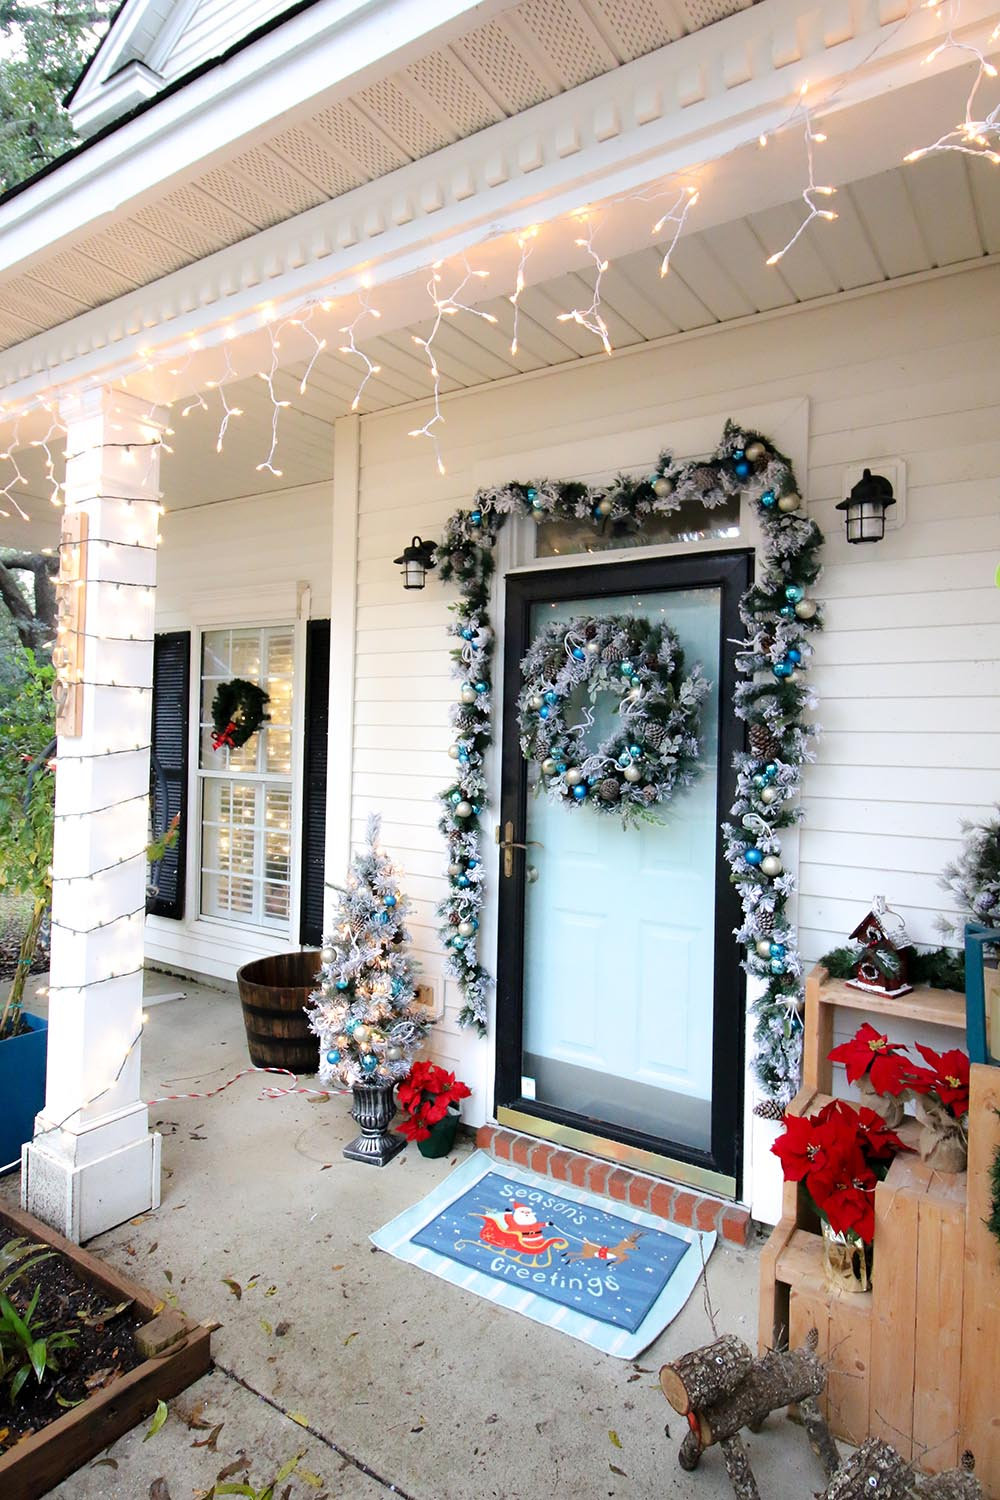 A holiday porch refresh with flocked garland, a wreath, and icicle lights.